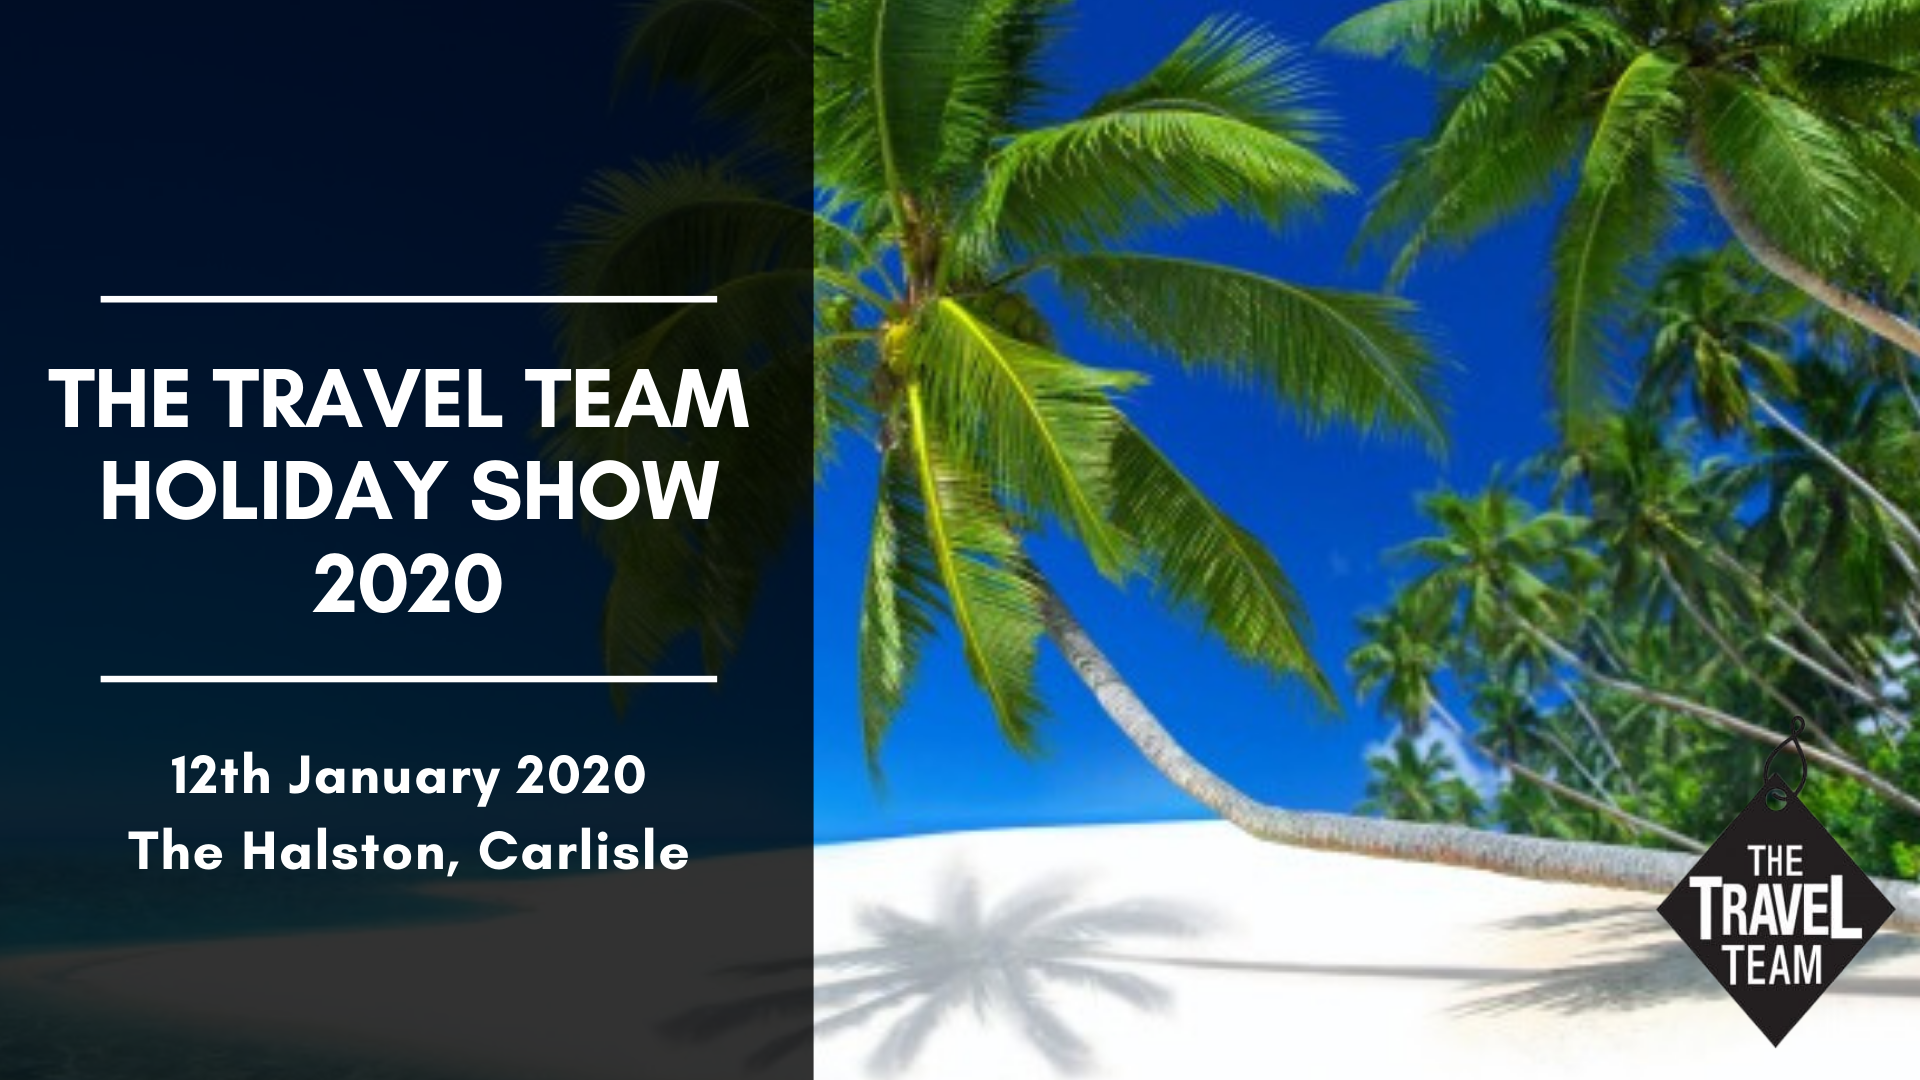 The Travel Team 2020 Holiday Show